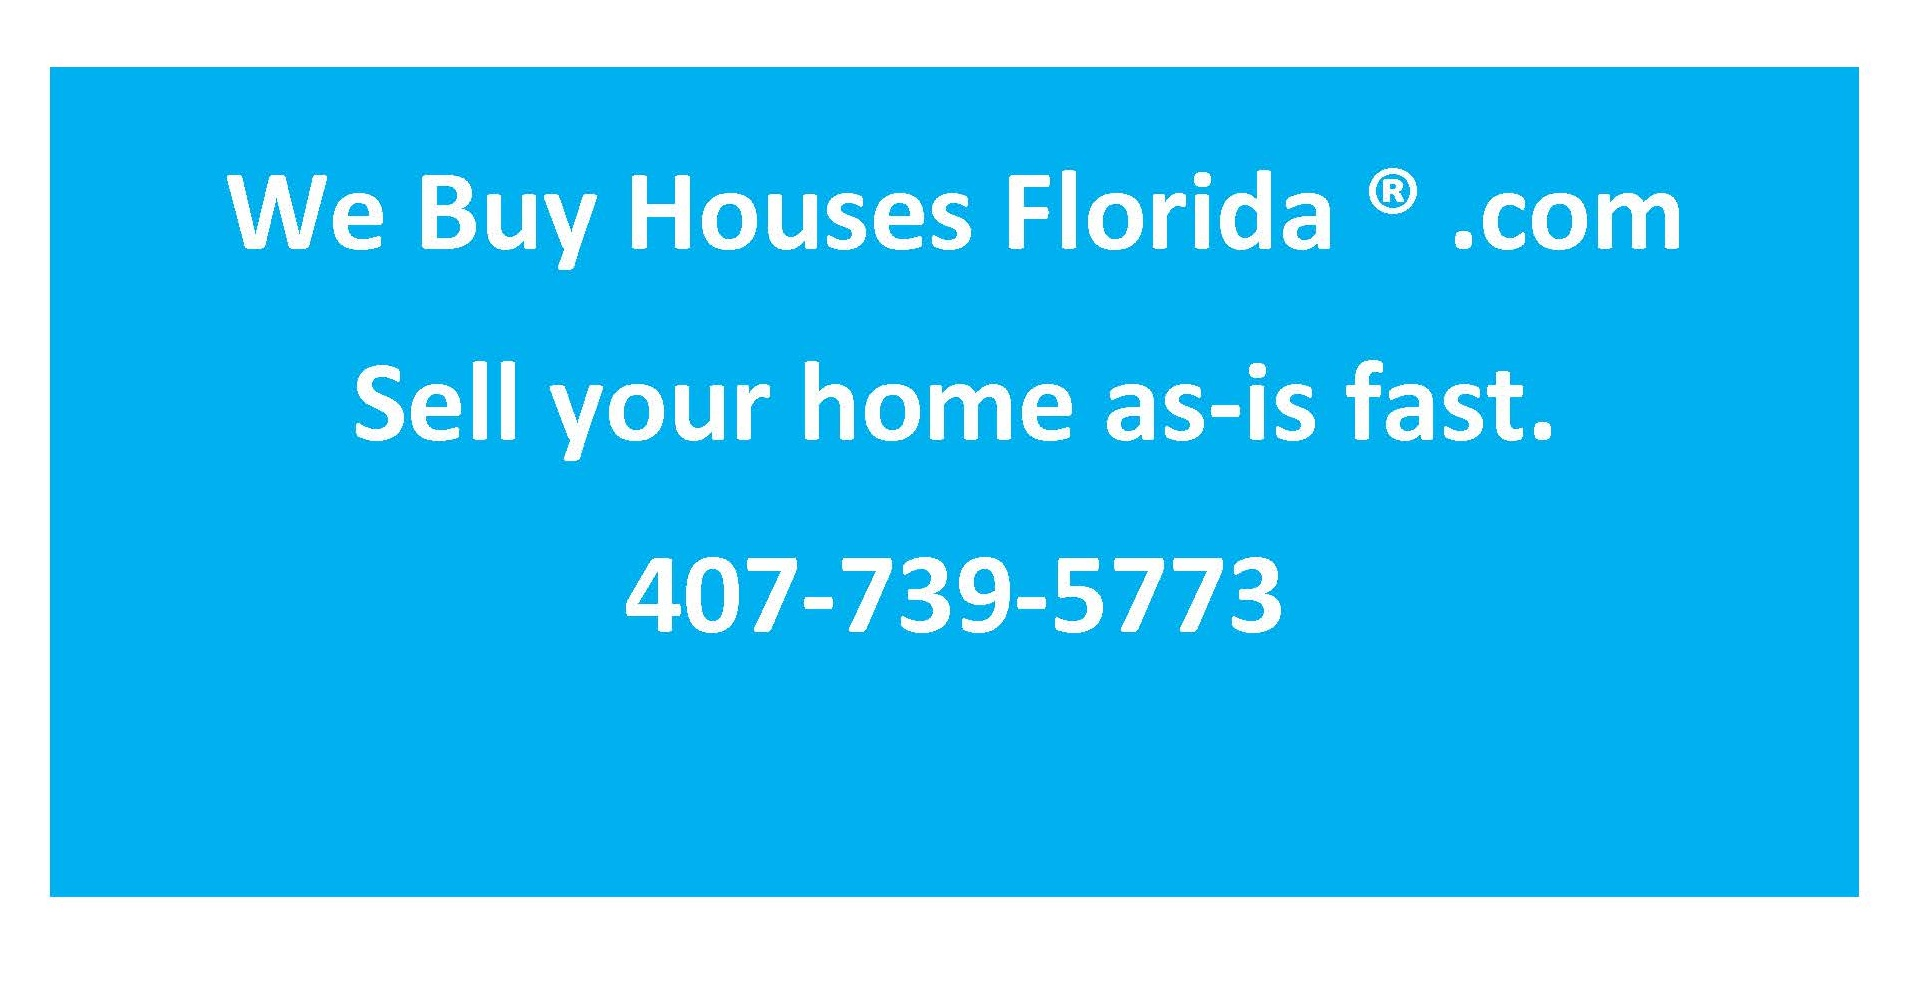 We buy houses Florida  Sell your home fast cash  Orlando